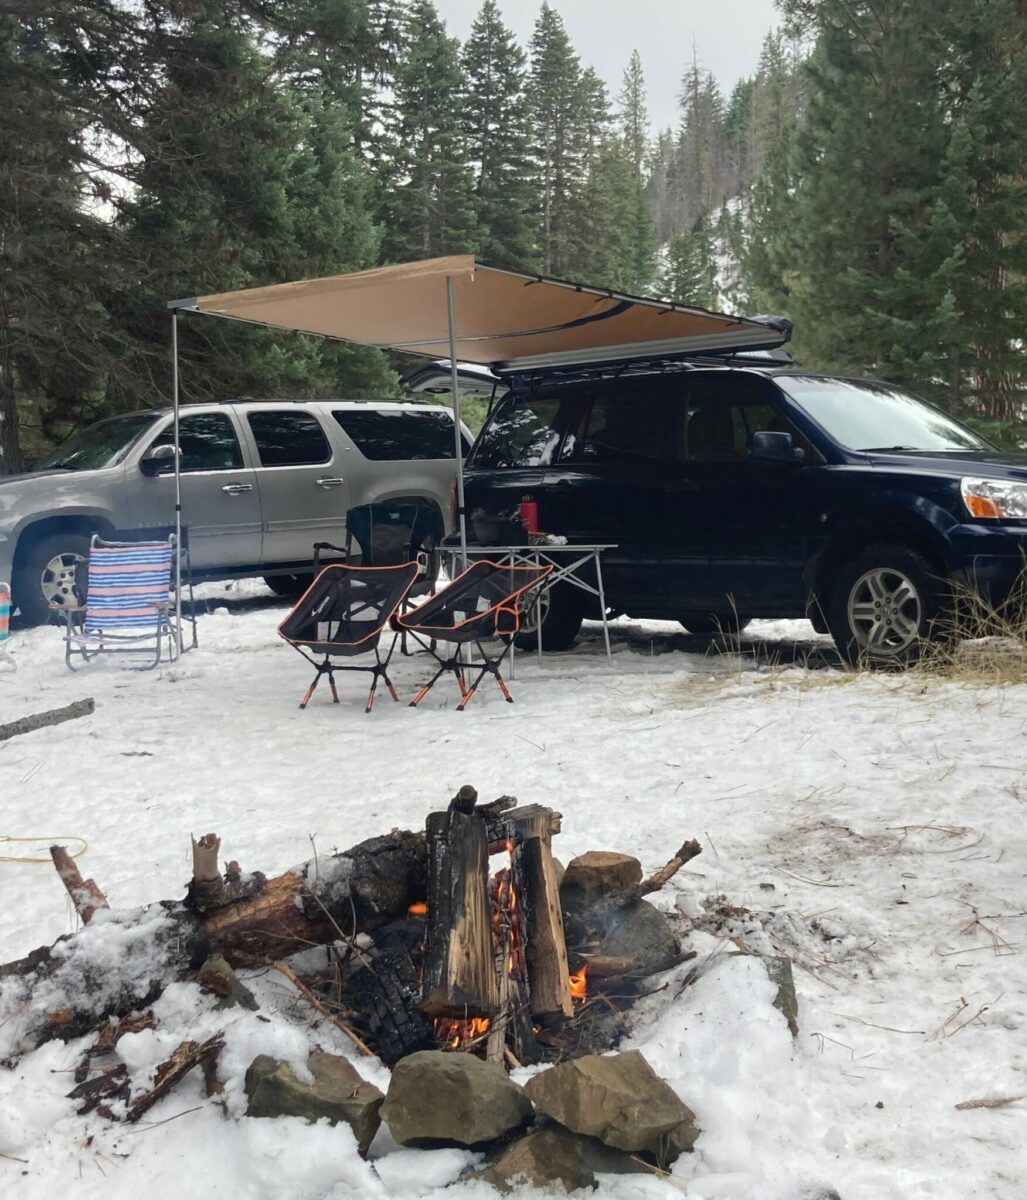 A gray SUV parked near a blue SUV. The blue SUV has a roof top awning set up on the side with a table and camp chairs under it. There is snow on the ground and in the foreground is a campfire